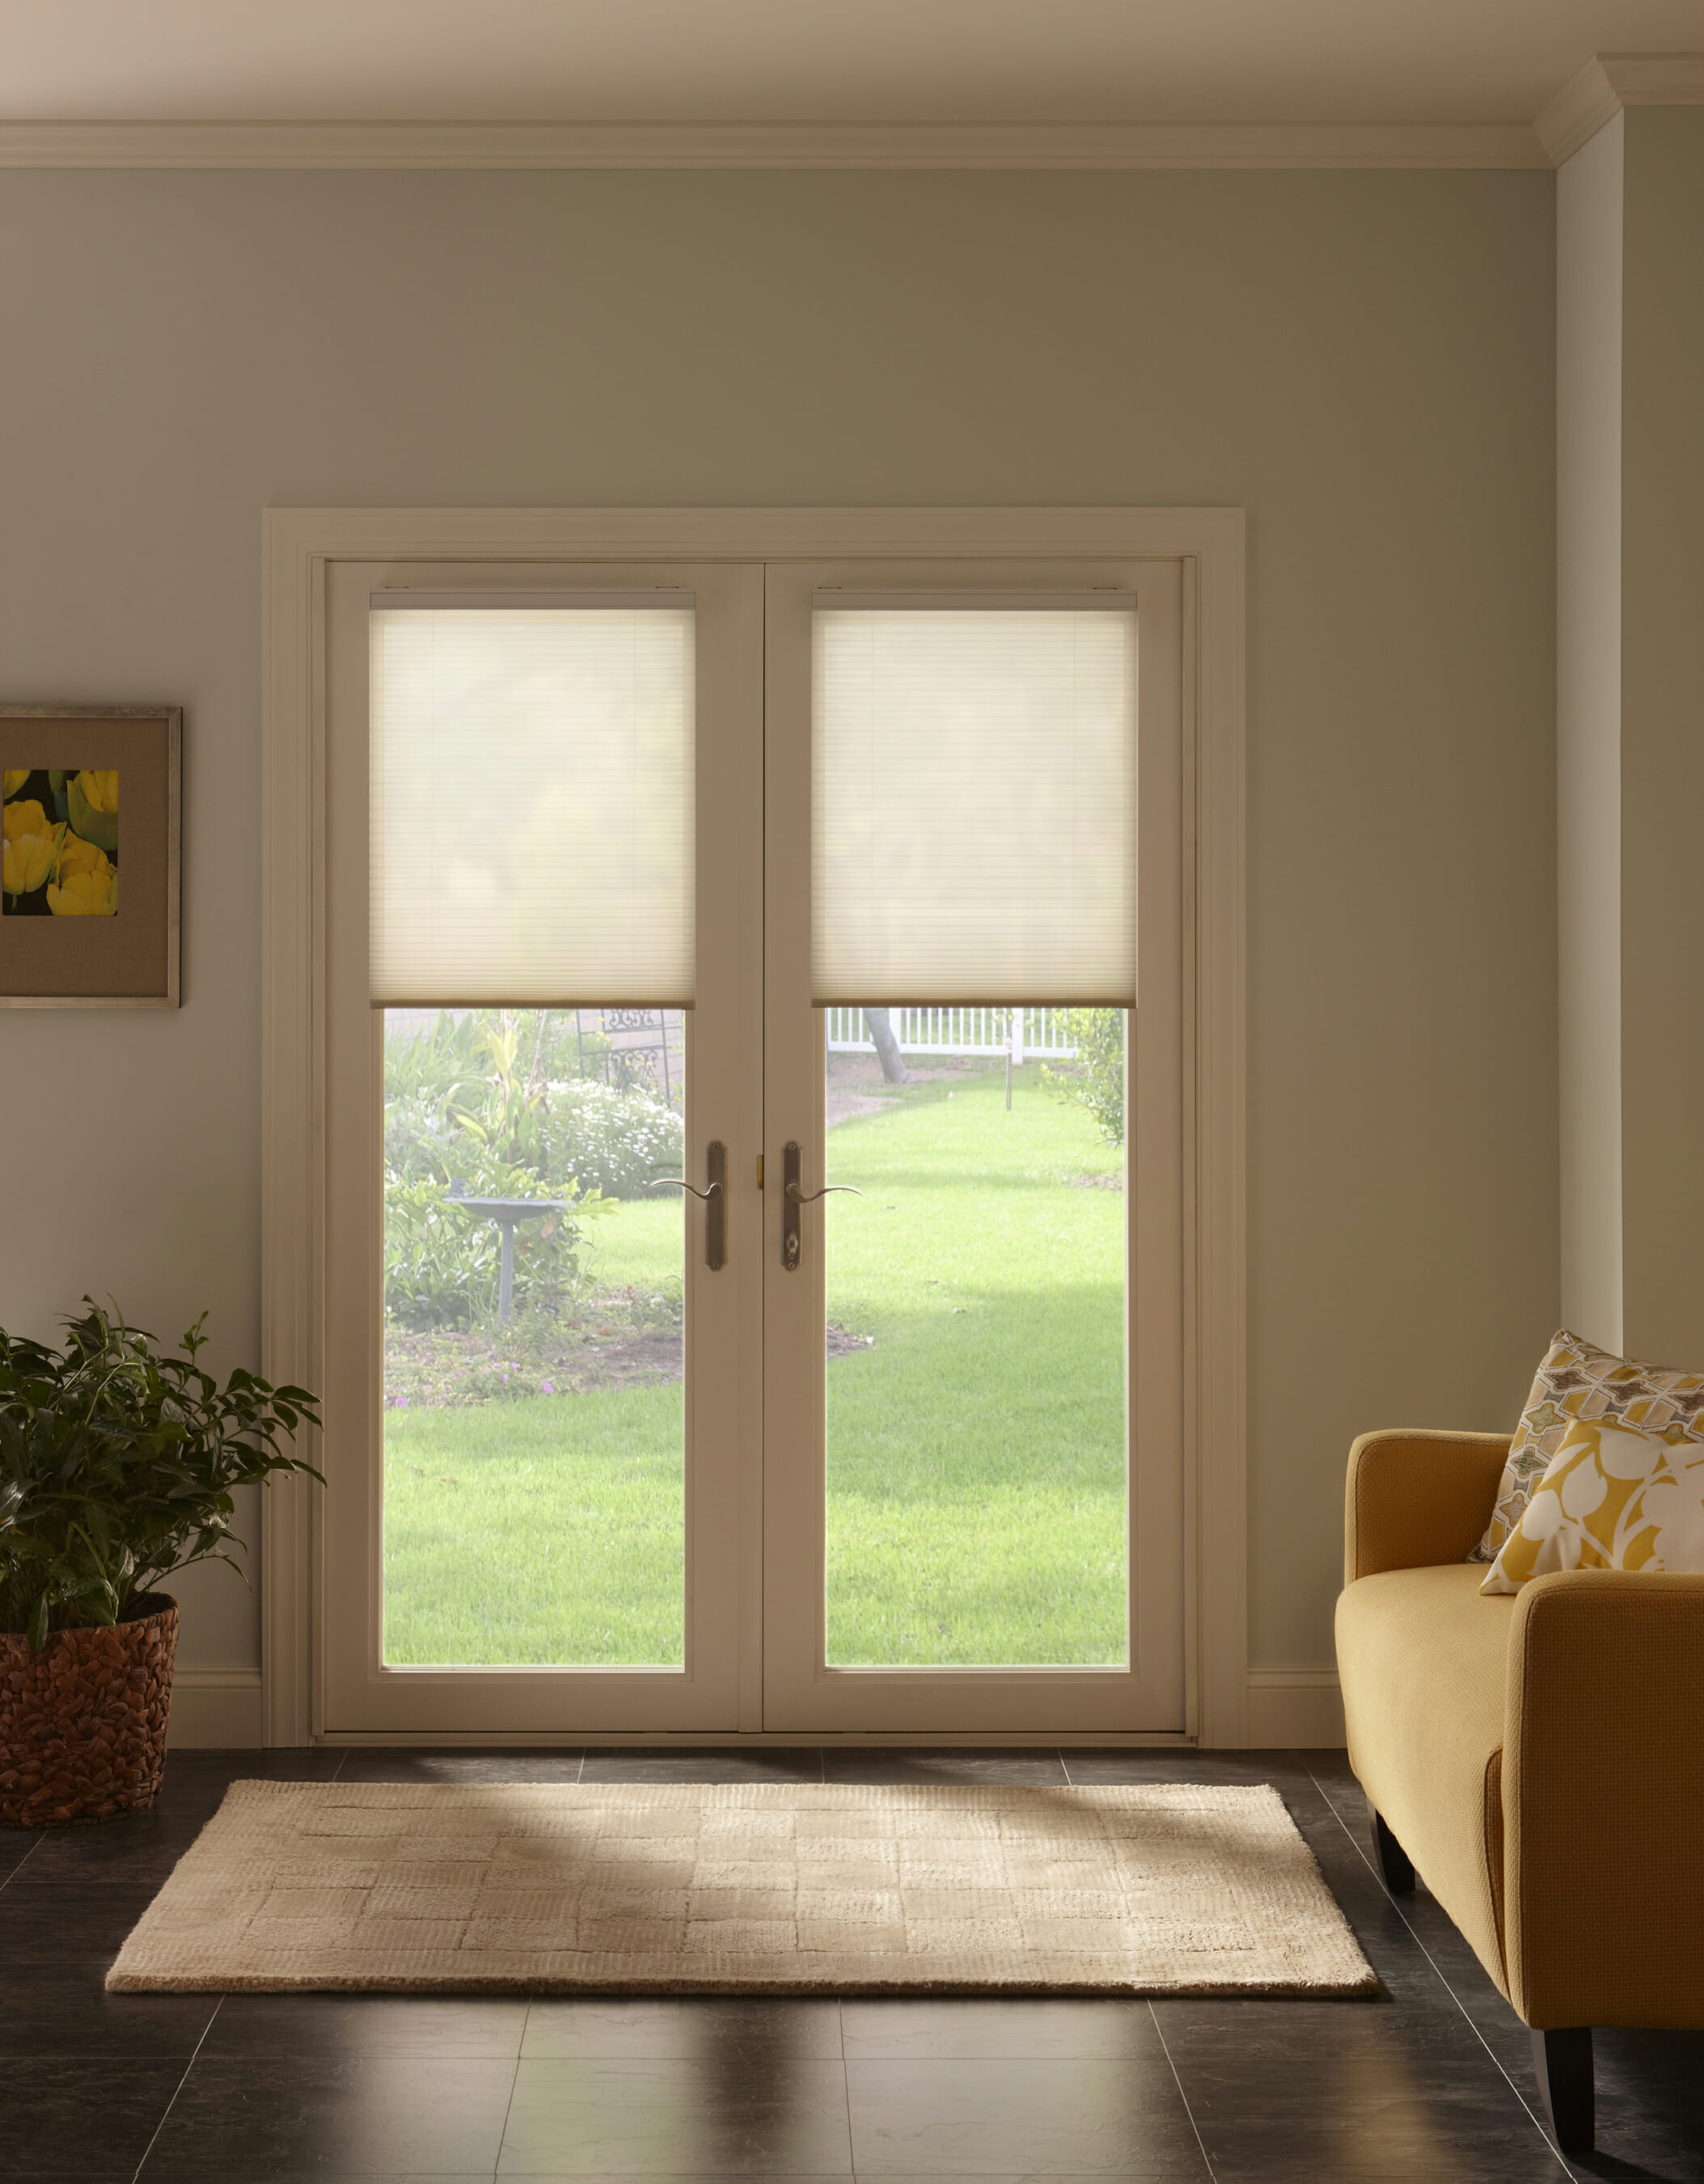 r wood faux home cordless blind treatments blinds shades com window decor pl door at shop in plantation lowes a